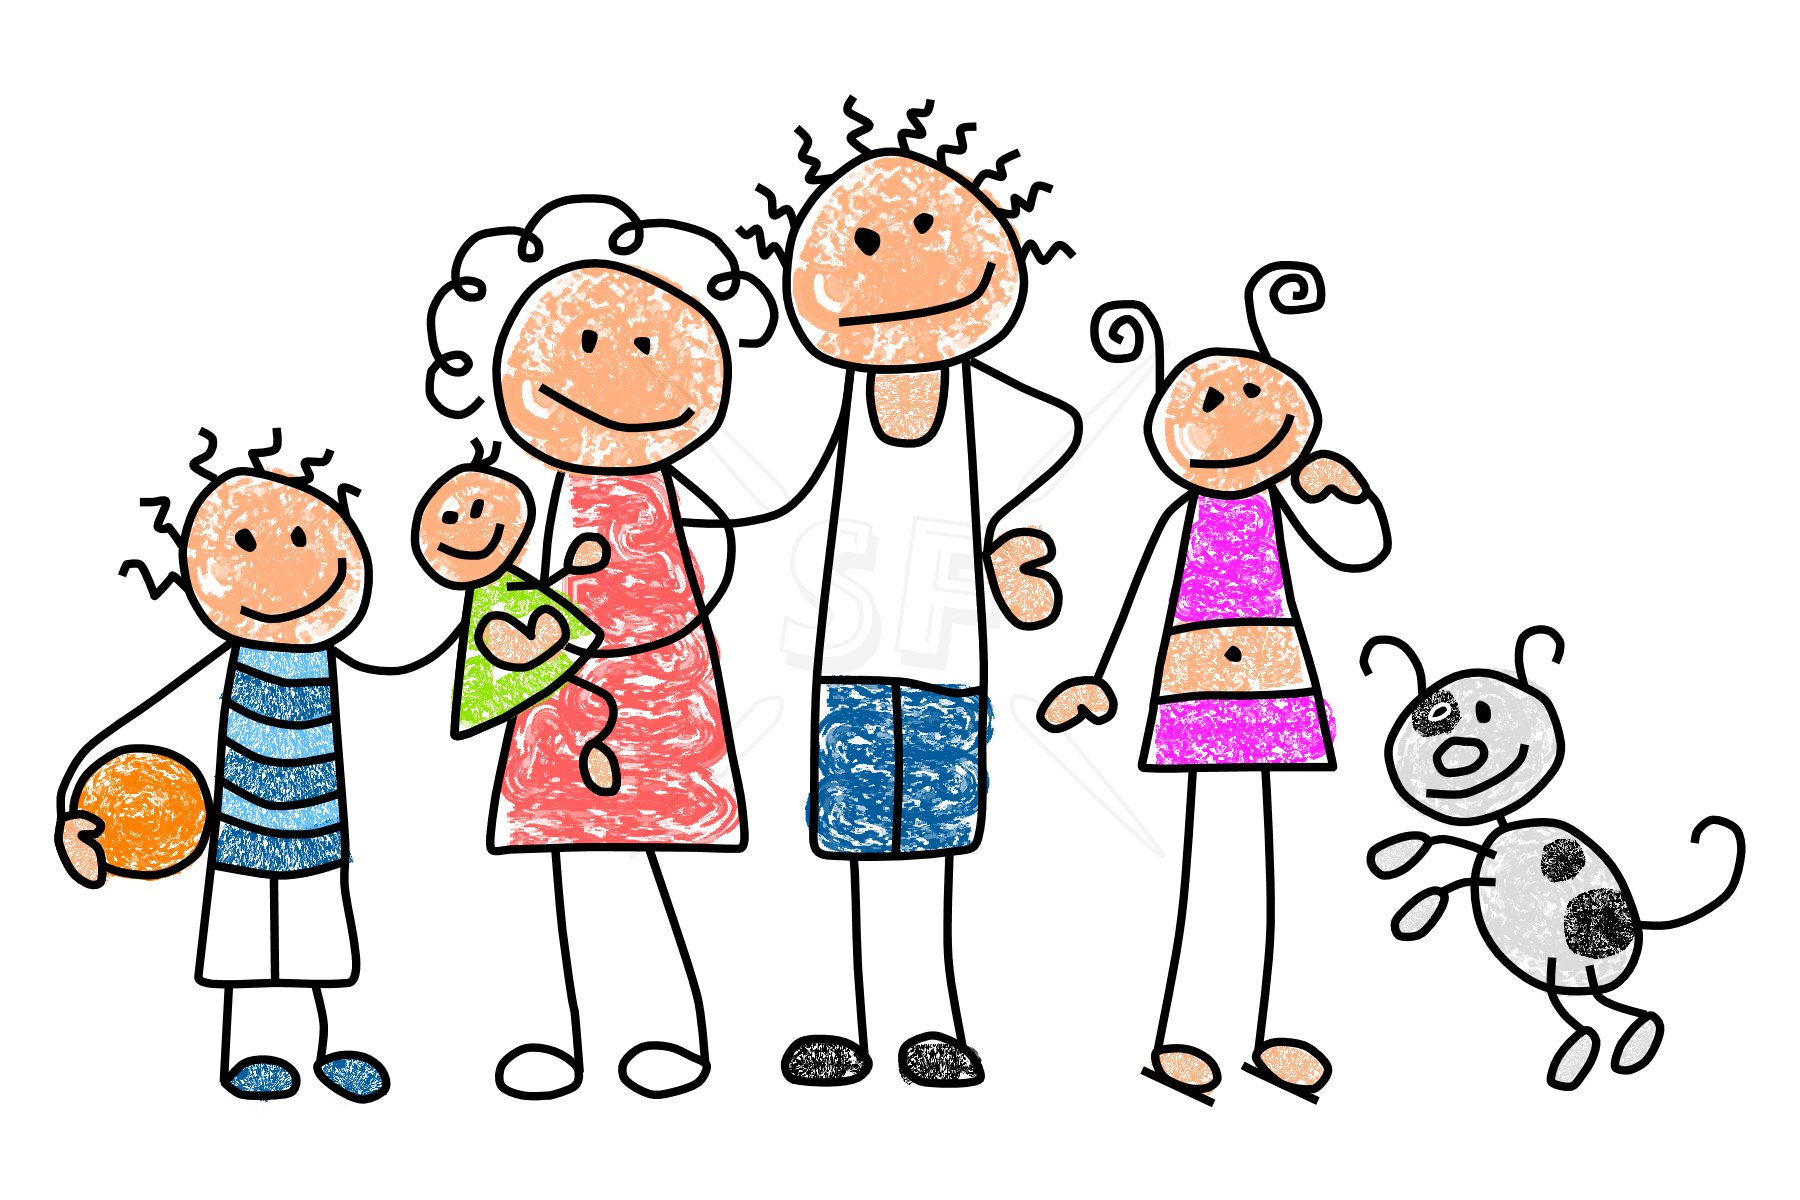 Stick People Images - ClipArt Best